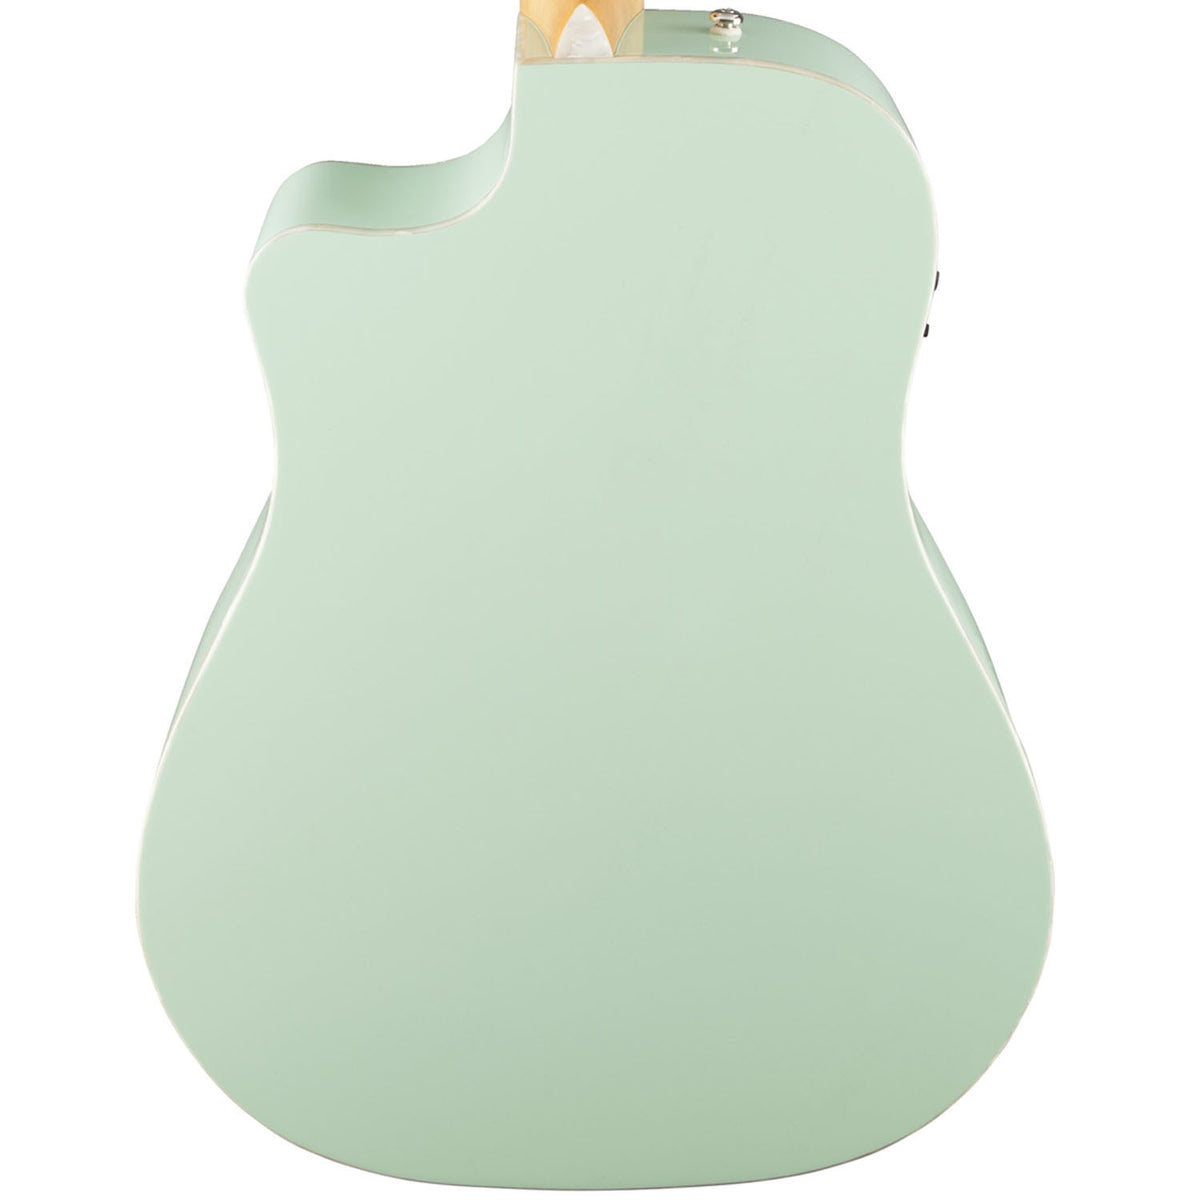 Fender Dreadnaught Surf Green - Garrett Park Guitars  - 5